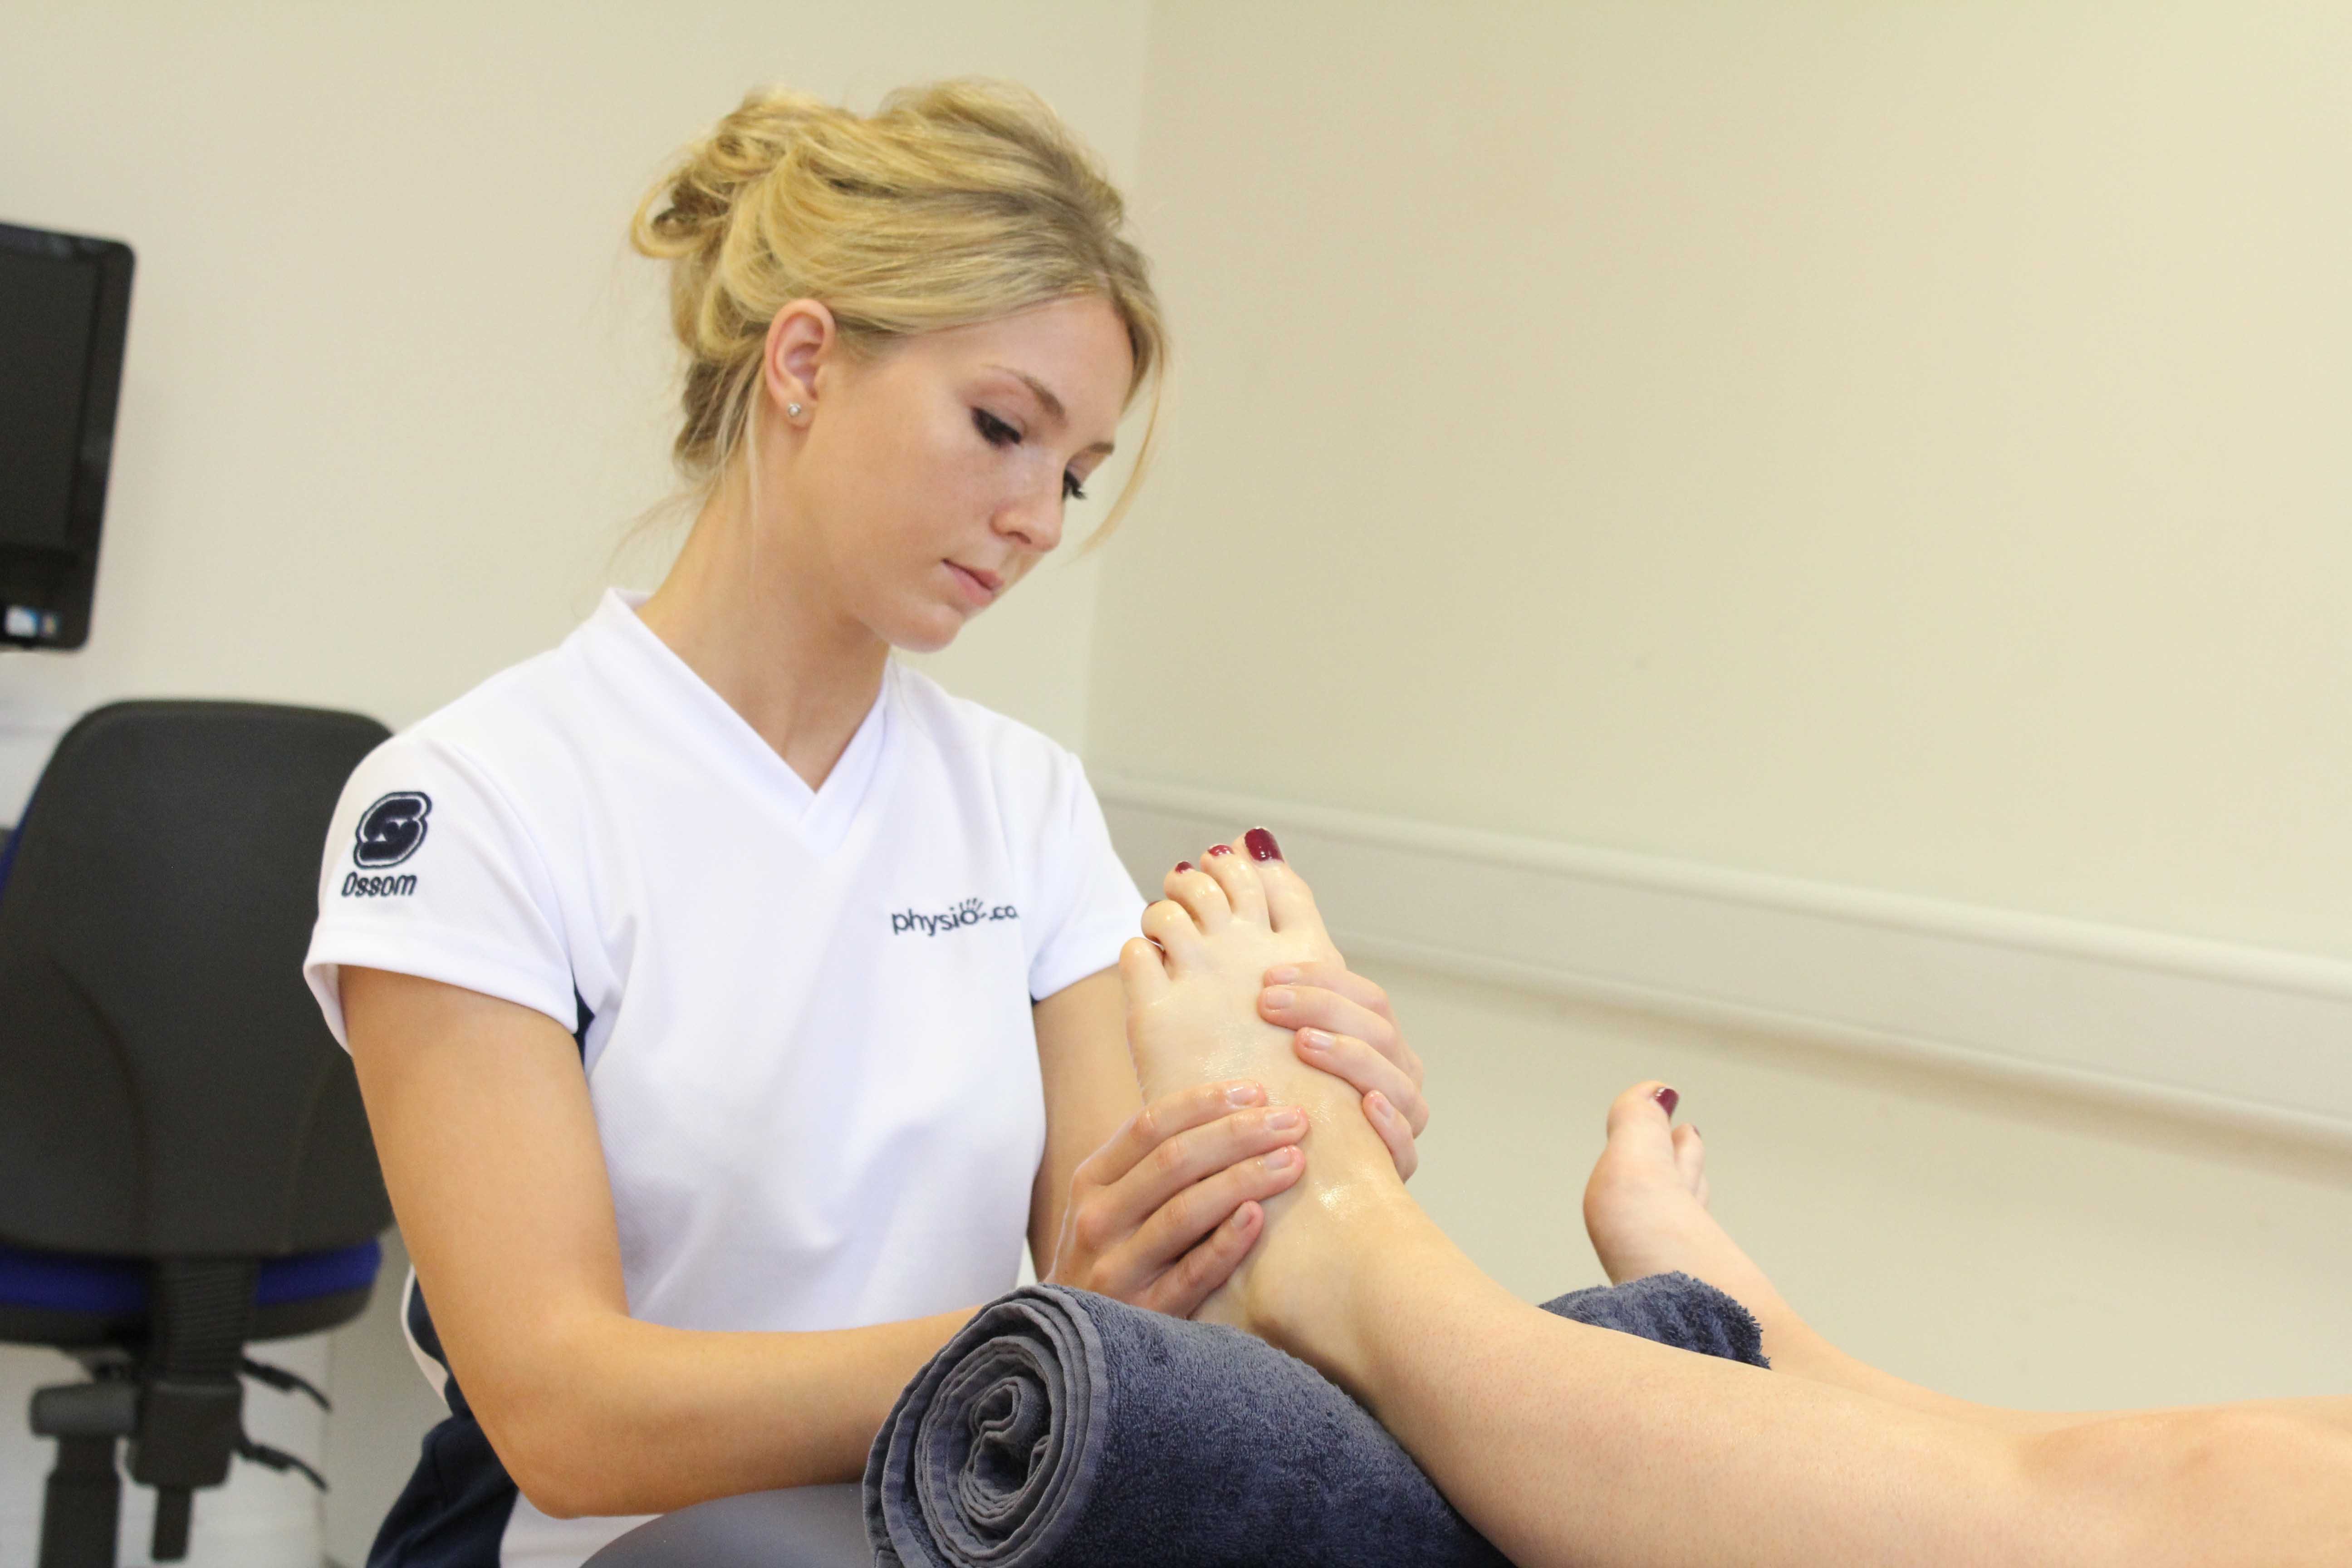 Soft tissue massage of the planta fascia along the sole of the foot.